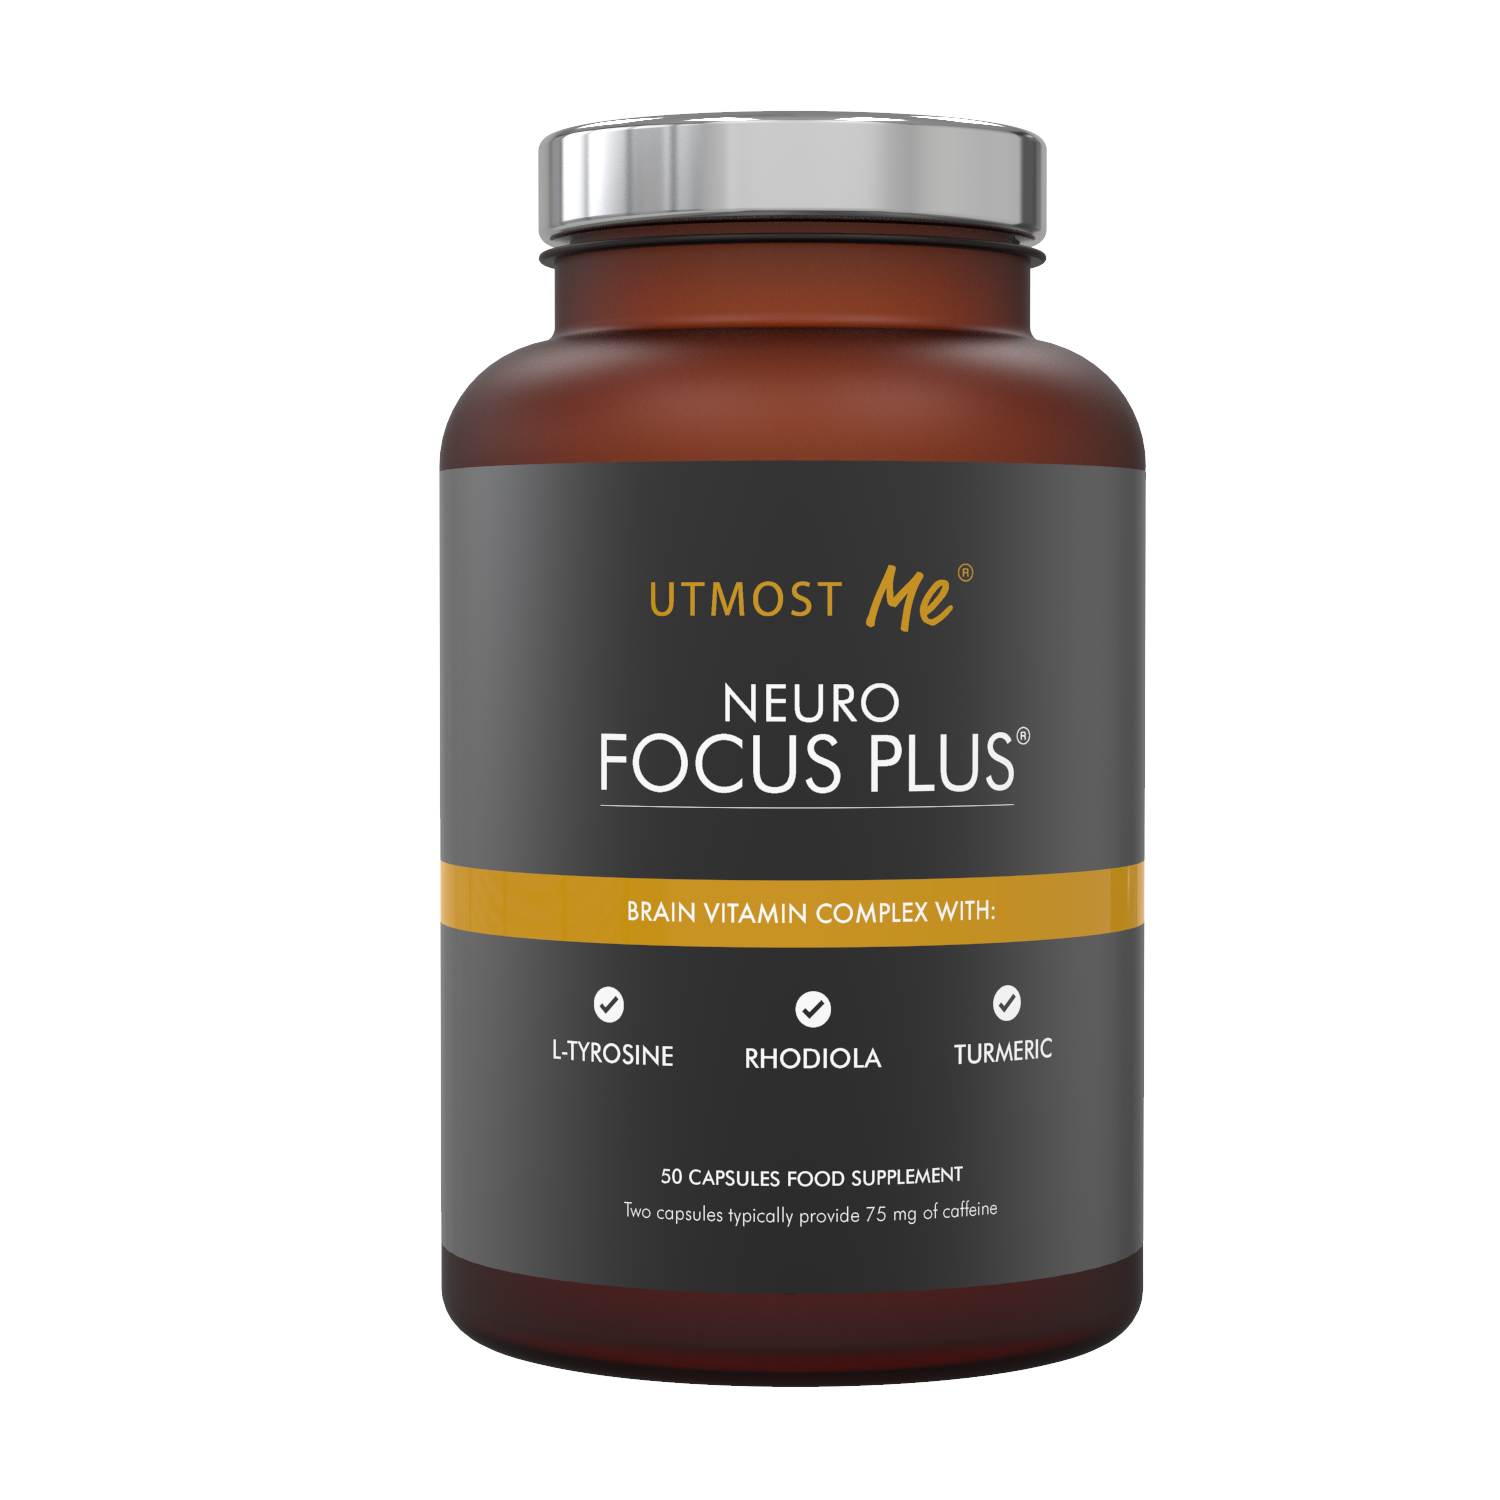 ENERGY: Neuro Focus Plus